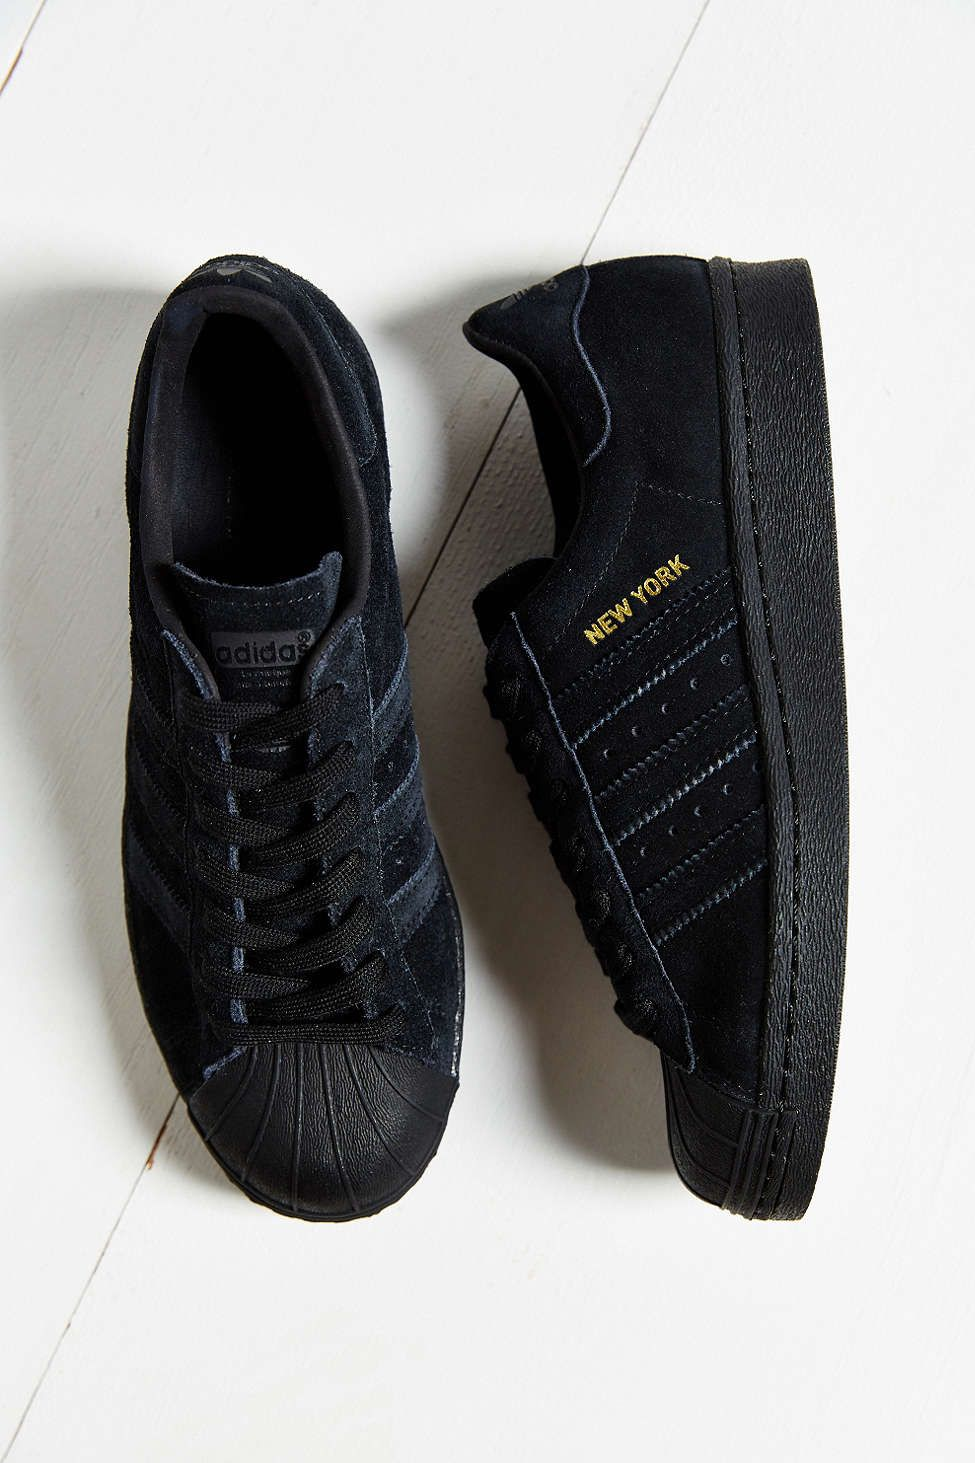 Cheap Adidas Superstar Up Zapatillas Cheap Adidas de Mujer en Mercado Libre